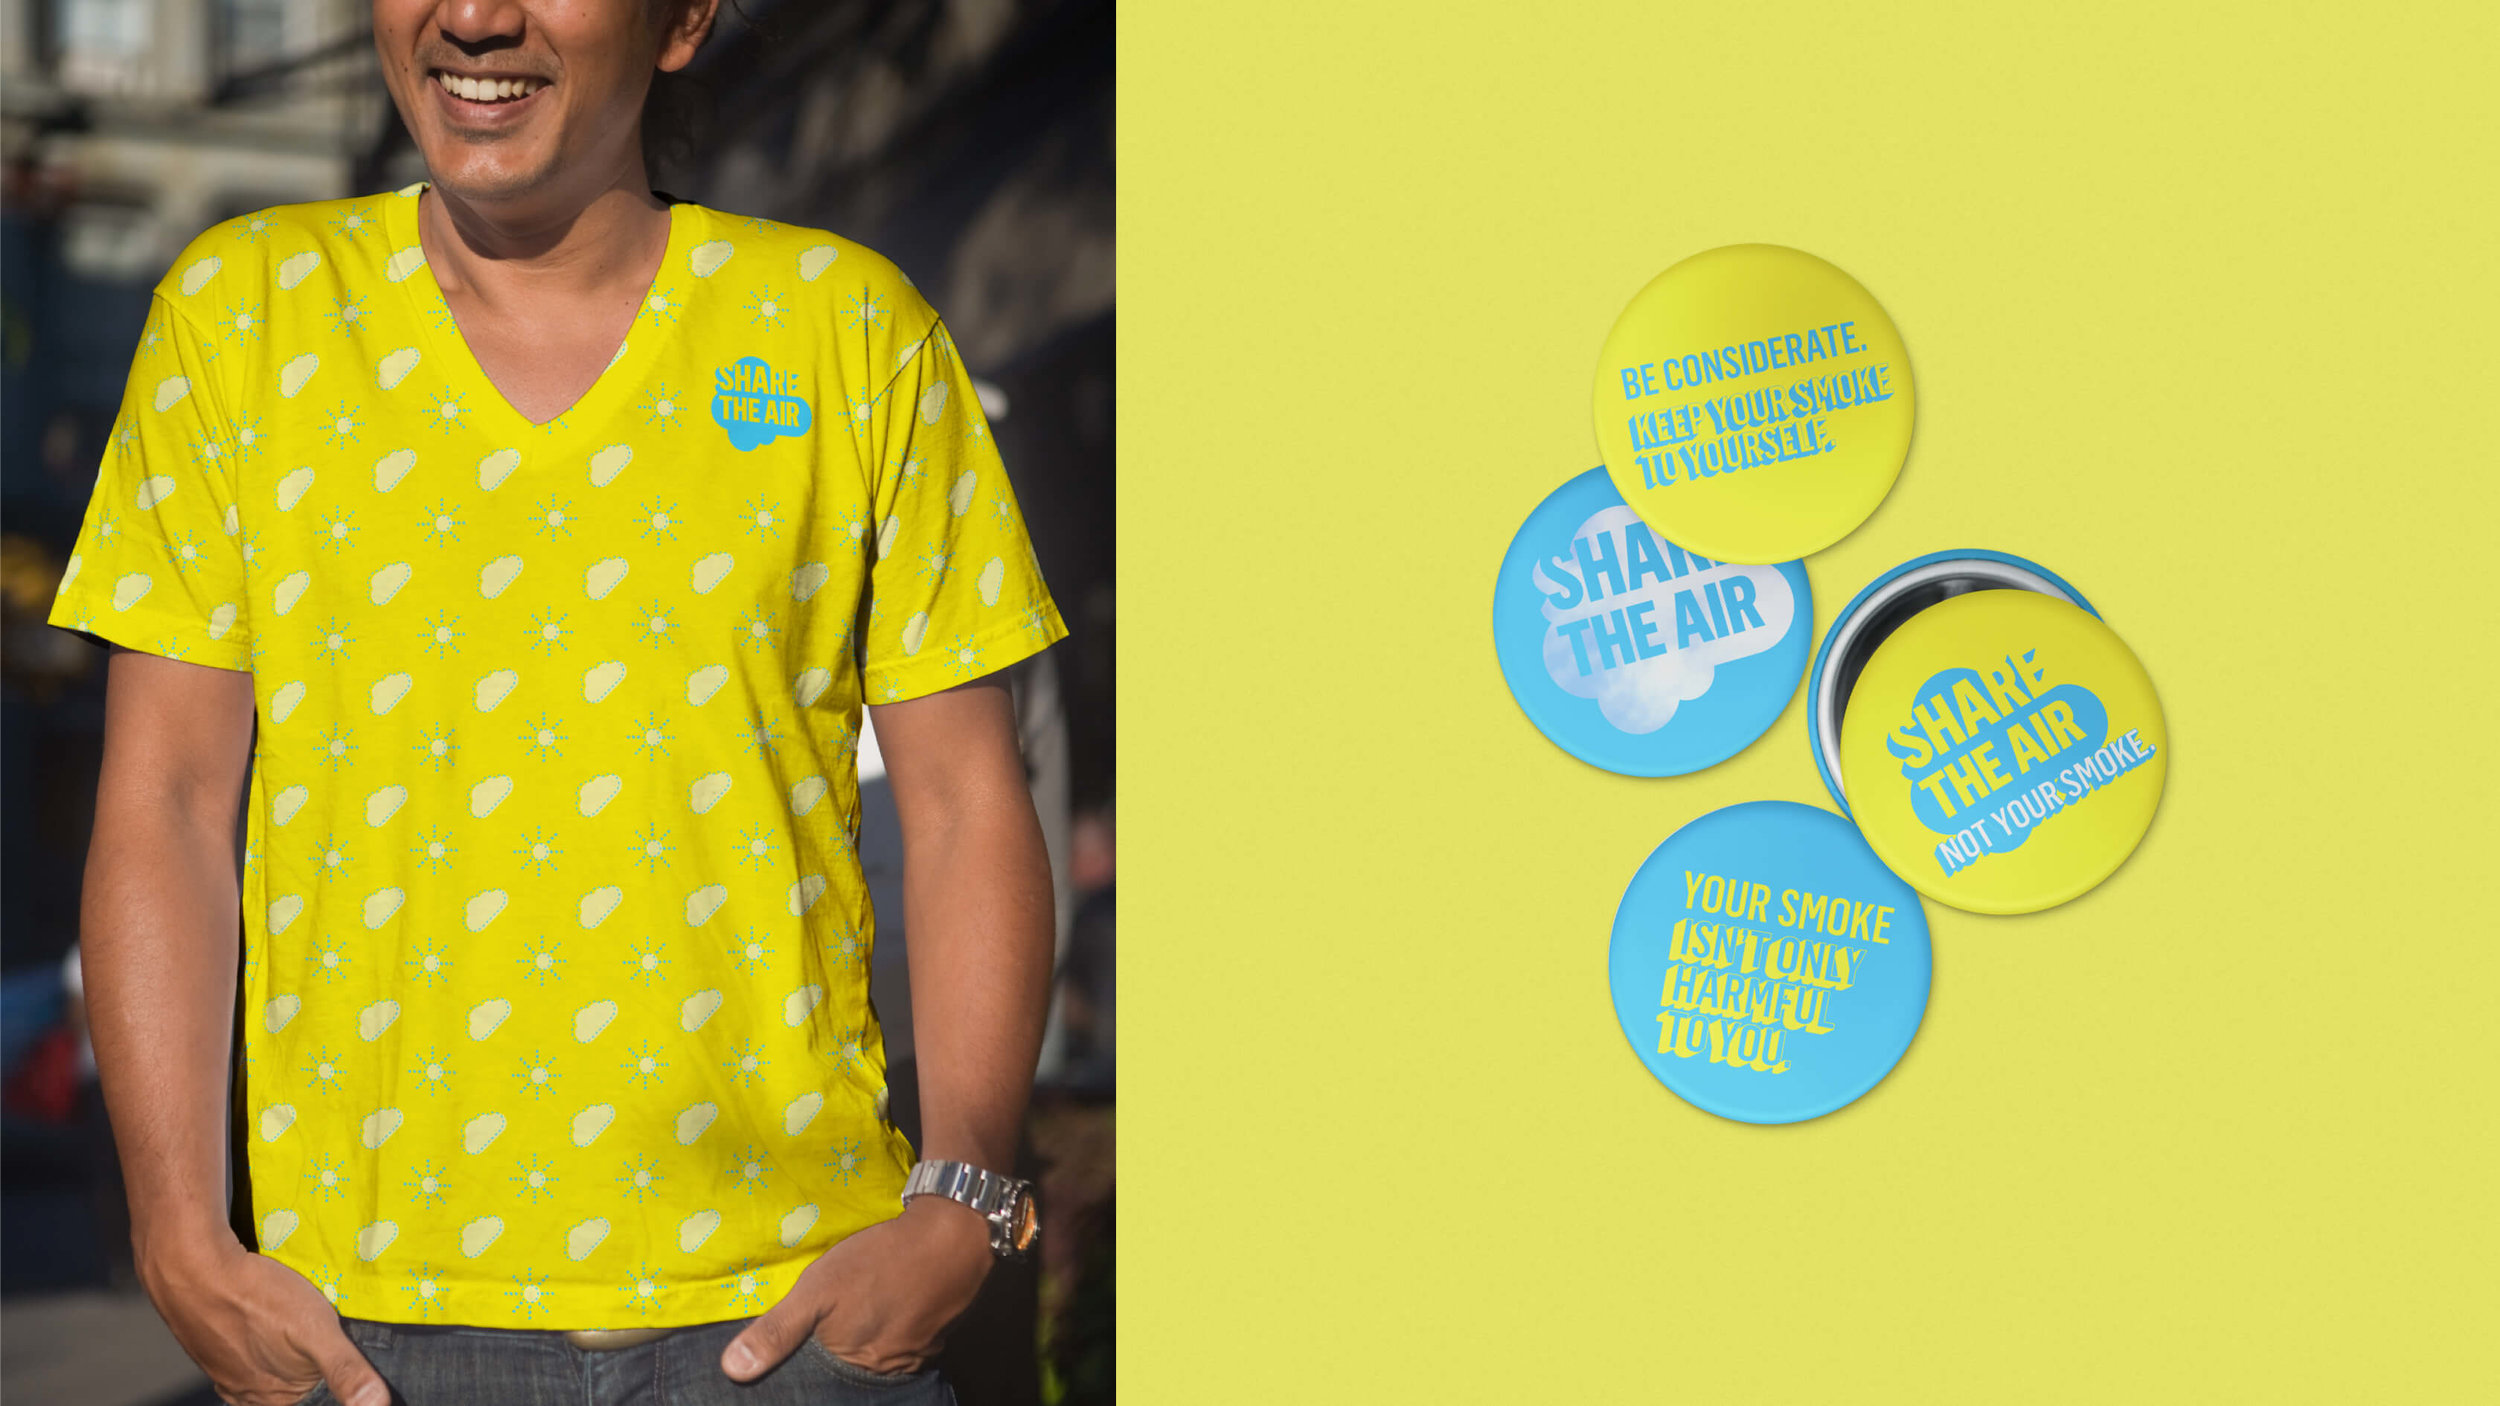 Share the Air buttons and t-shirt on Pacific Islander